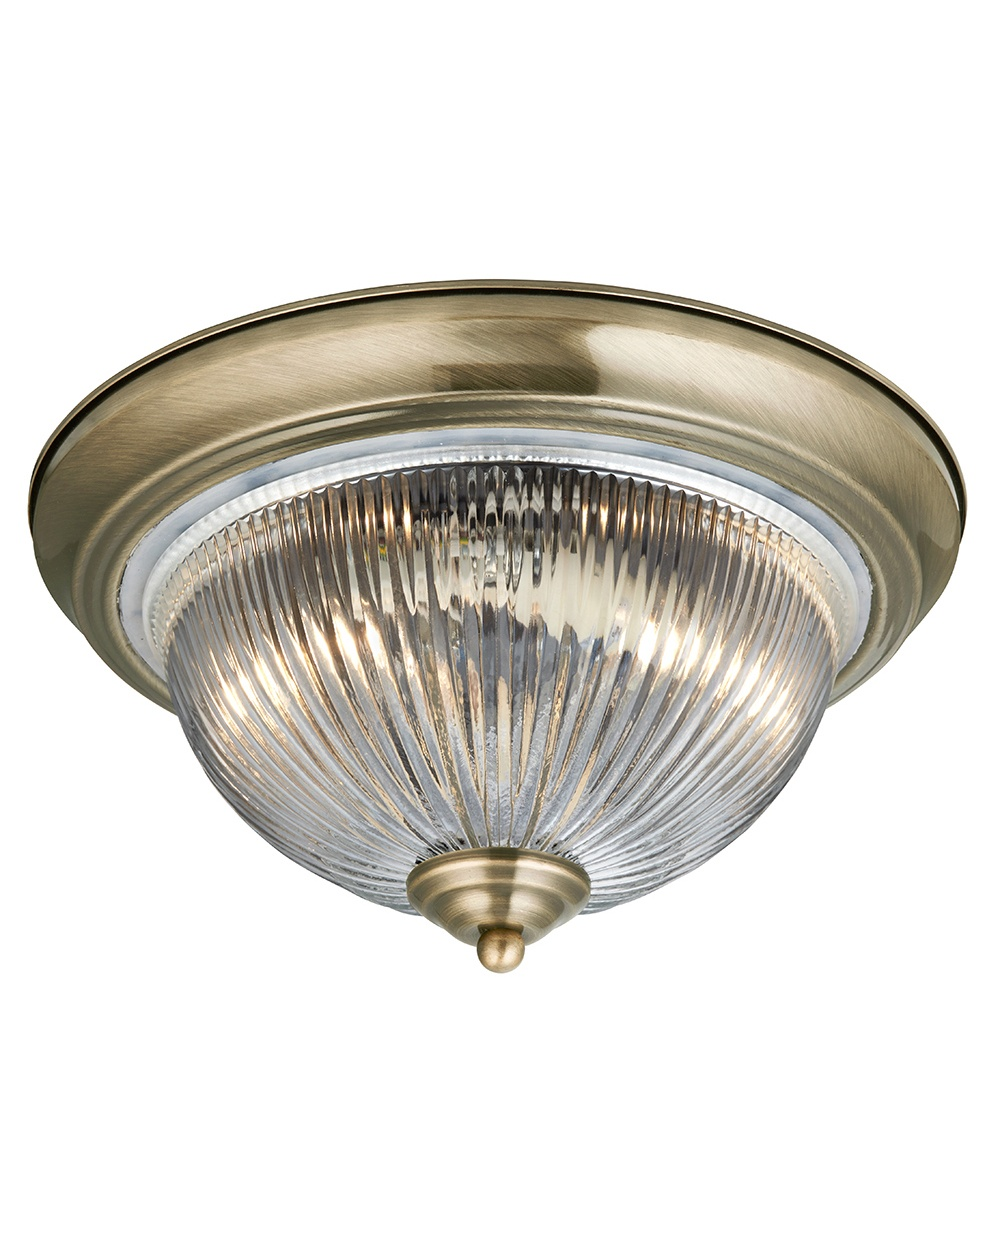 Ceiling lights chandeliers spotlights flush fitting : Searchlight american diner light traditional flush